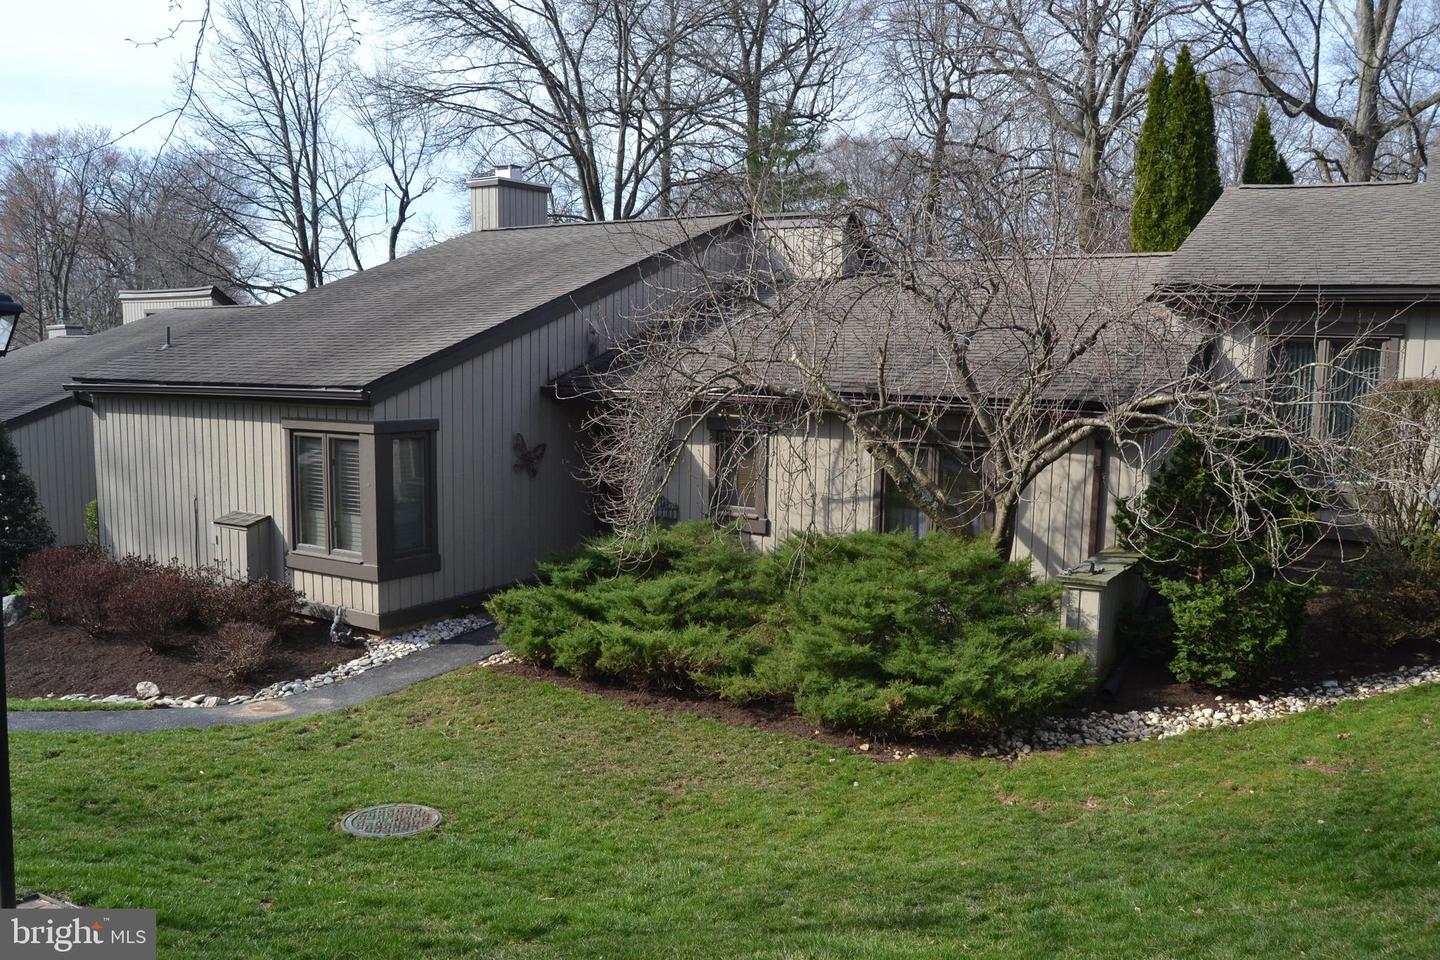 145 Chandler Drive West Chester, PA 19380